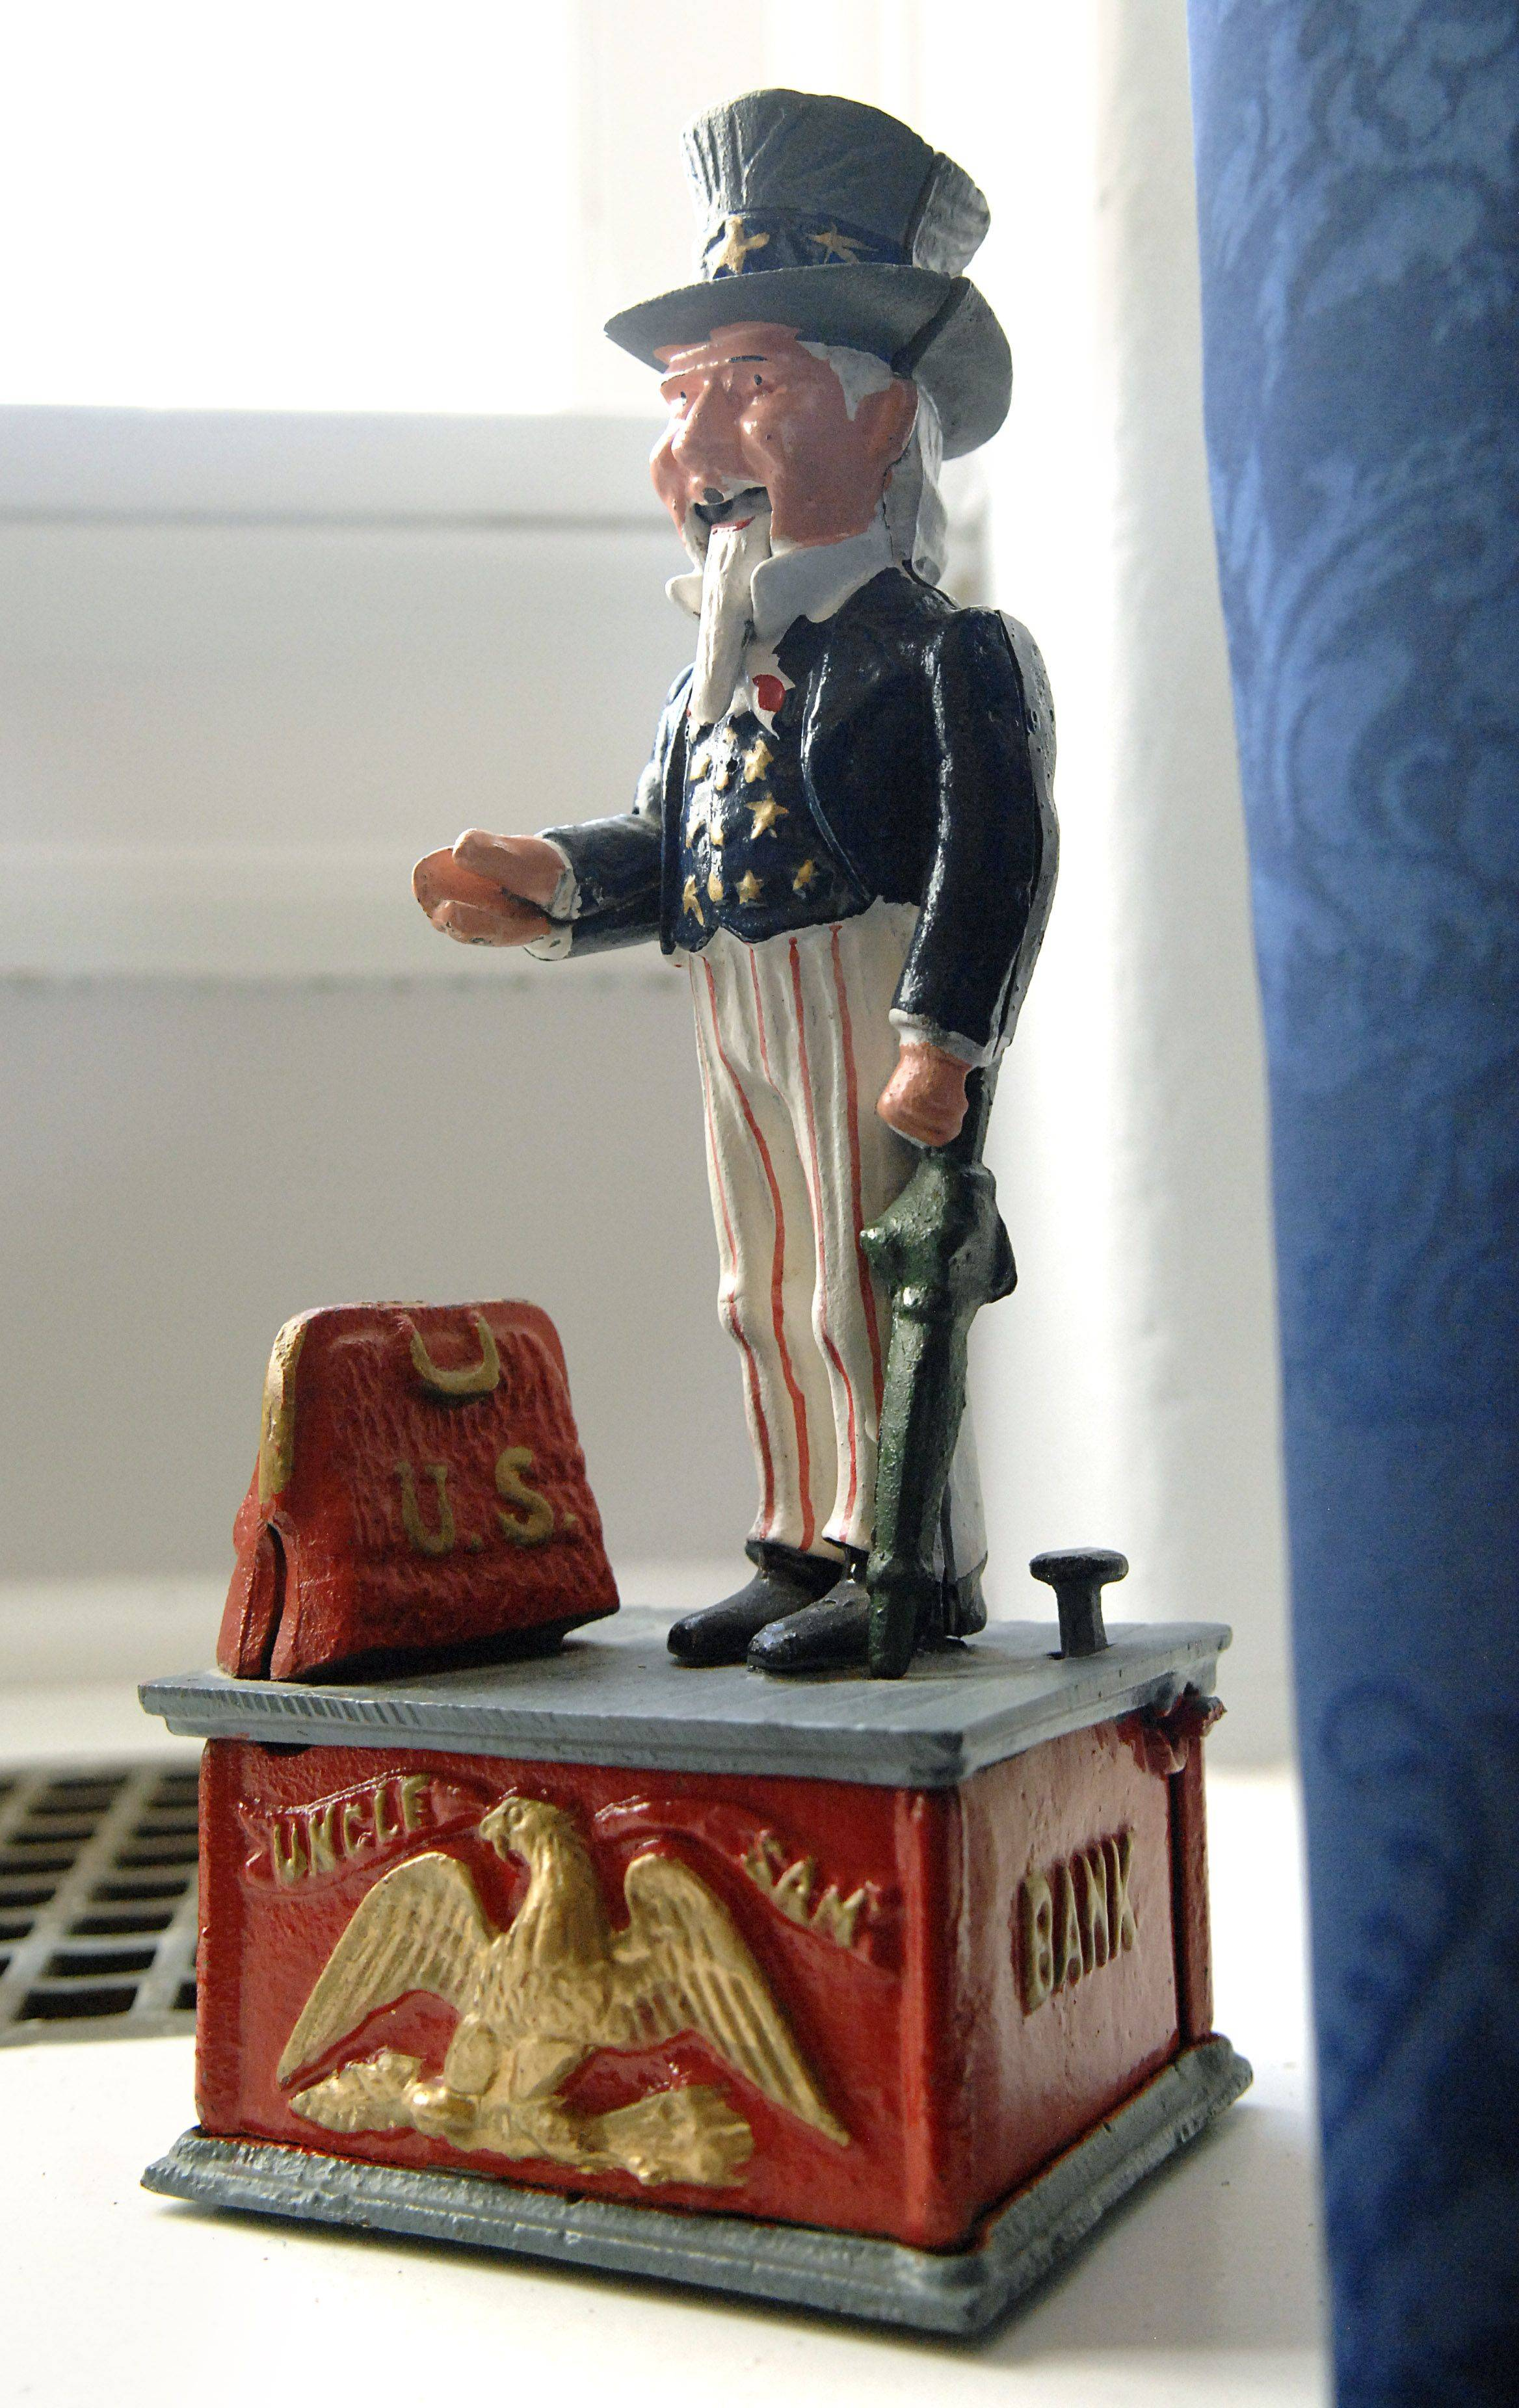 An Uncle Sam bank sits on a window sill in Congressman Joe Walsh's Washington office. He says the bank reminds him of the need to be fiscally responsible.